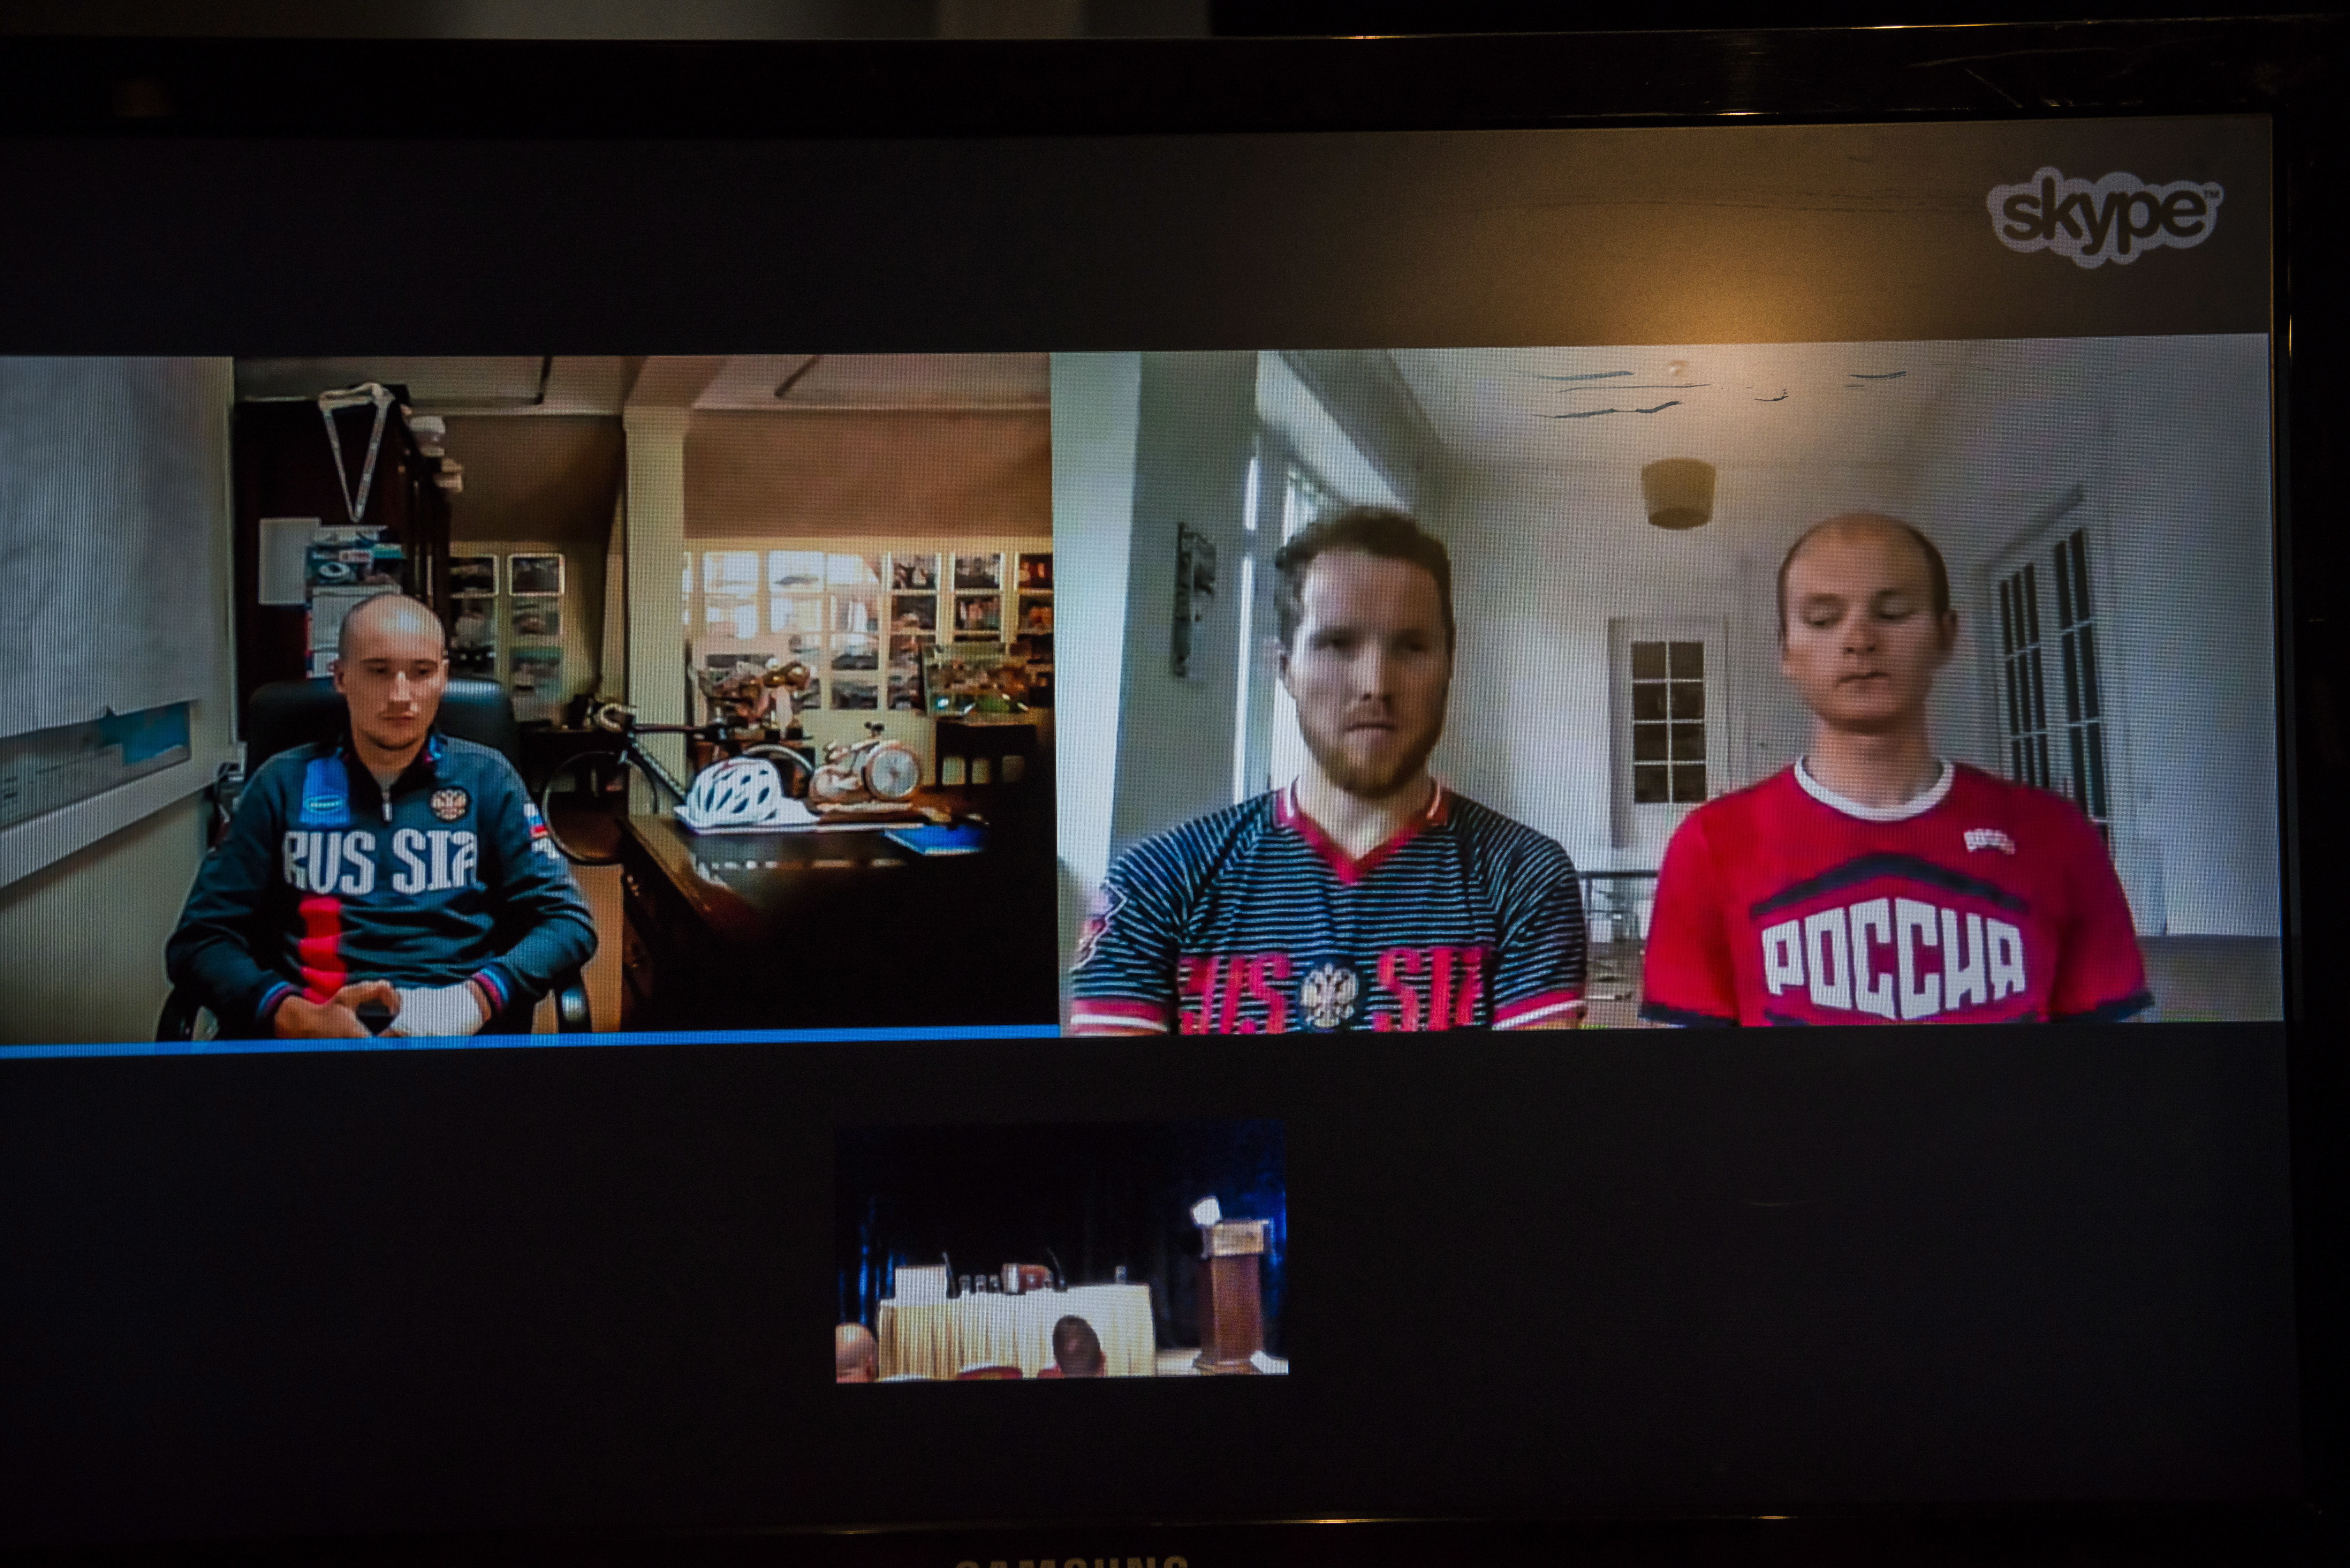 Russian cyclists, Kirill Sveshnikov, left, Dmitry Sokolov, center, and Dmitry Strakhov appear via teleconference after filing suit in the Ontario Superior Court of Justice against the World Anti-Doping Association, in Toronto, on Monday, Sept. 11, 2017. (